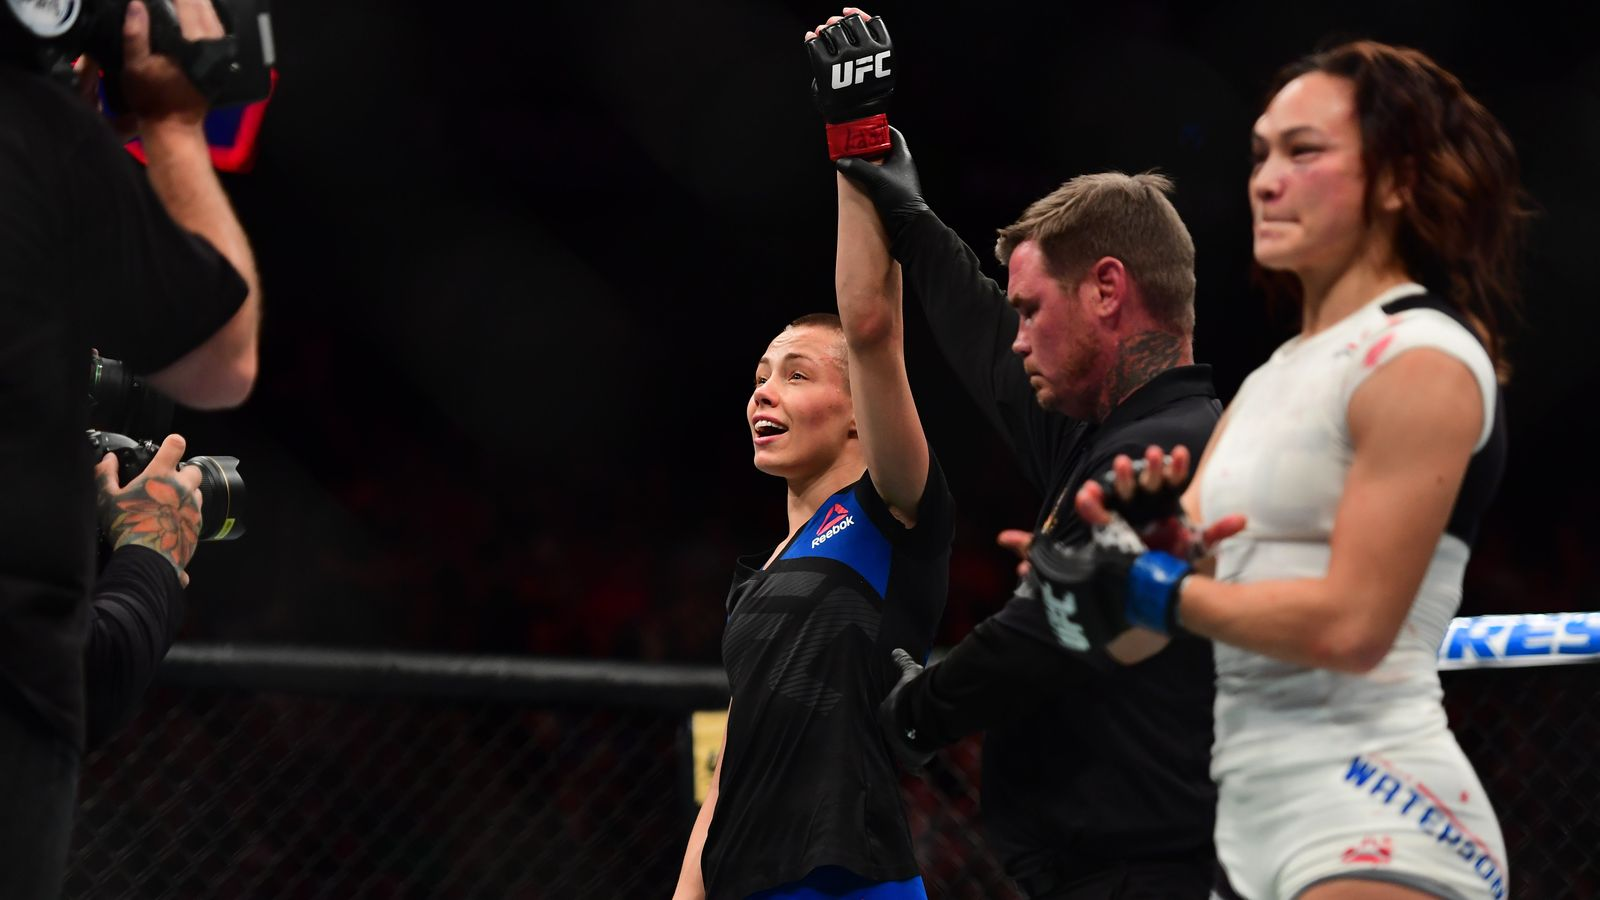 Apr 15, 2017; Kansas City, MO, USA; Rose Namajunas (Red Gloves) react to fight against Michelle Waterson (Blue Gloves) during UFC Fight Night at the Sprint Center. Mandatory Credit: Ron Chenoy-USA TODAY Sports